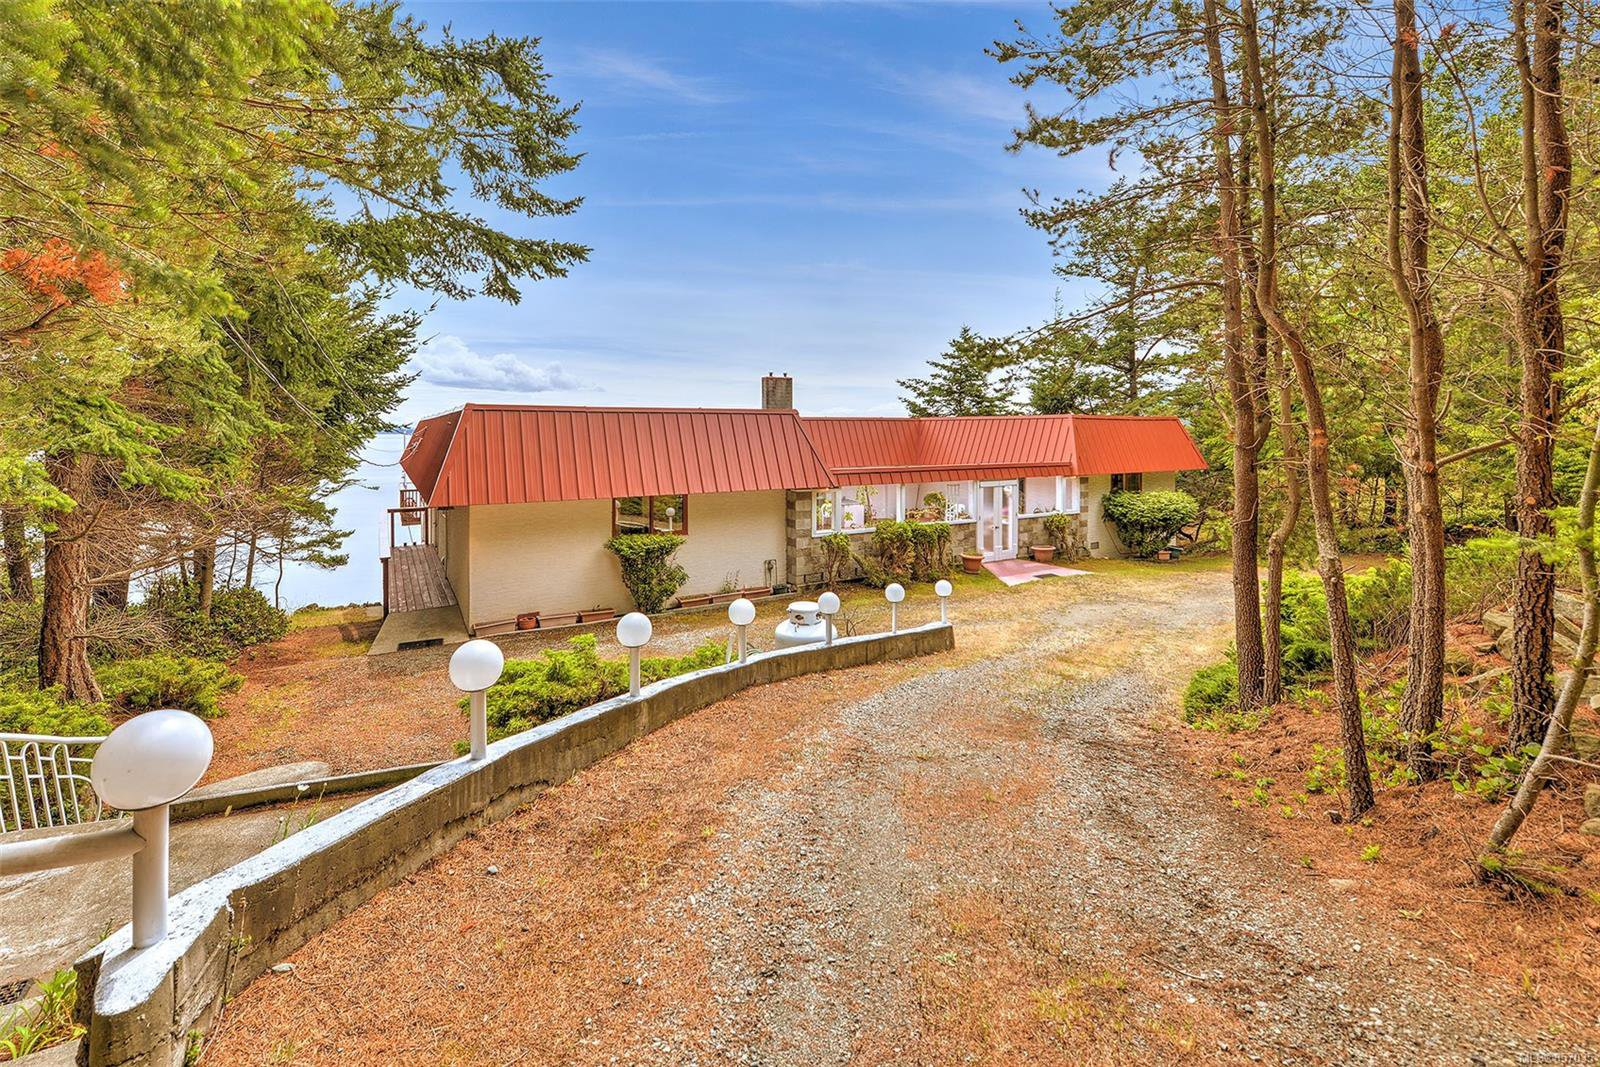 Photo 51: Photos: 172 Cliffside Rd in : GI Saturna Island House for sale (Gulf Islands)  : MLS®# 857035